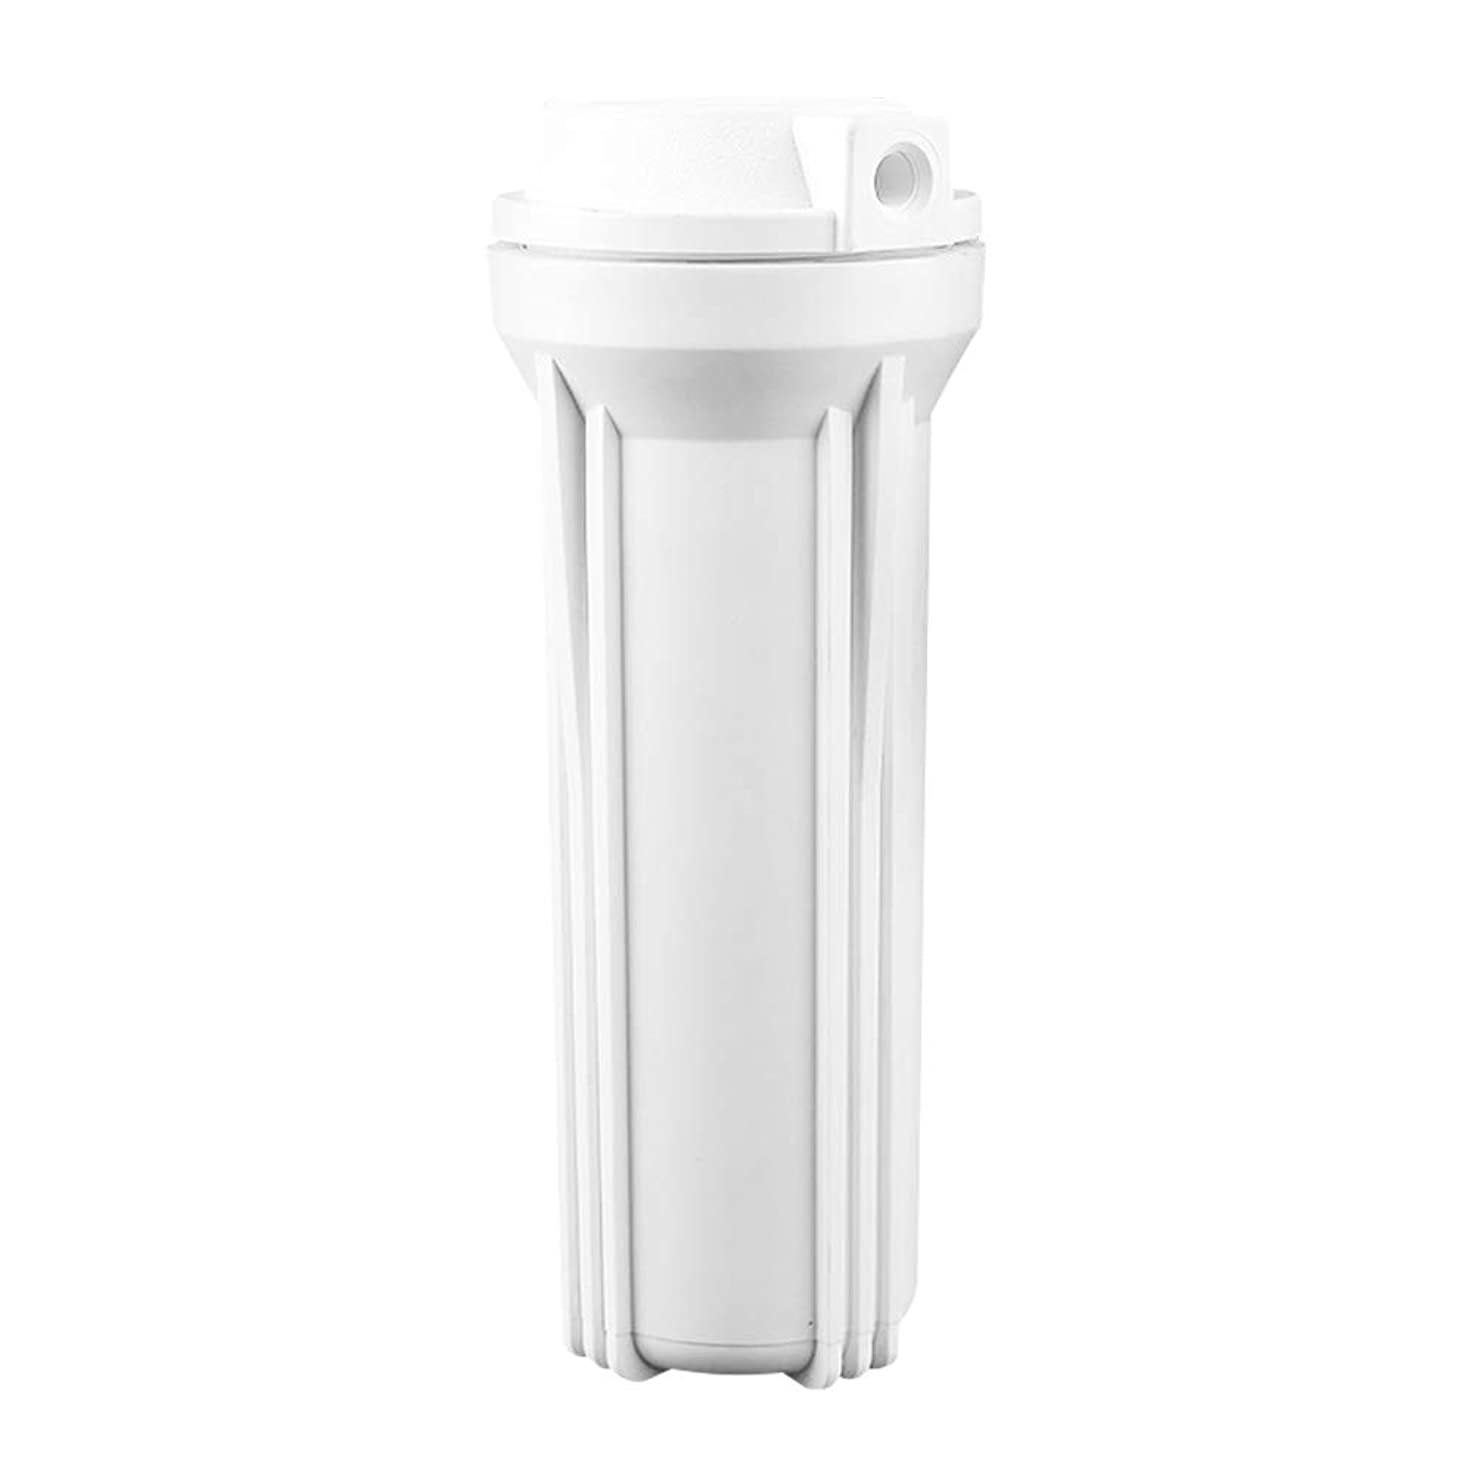 Geekpure Universal Compatible Filter Housing 10